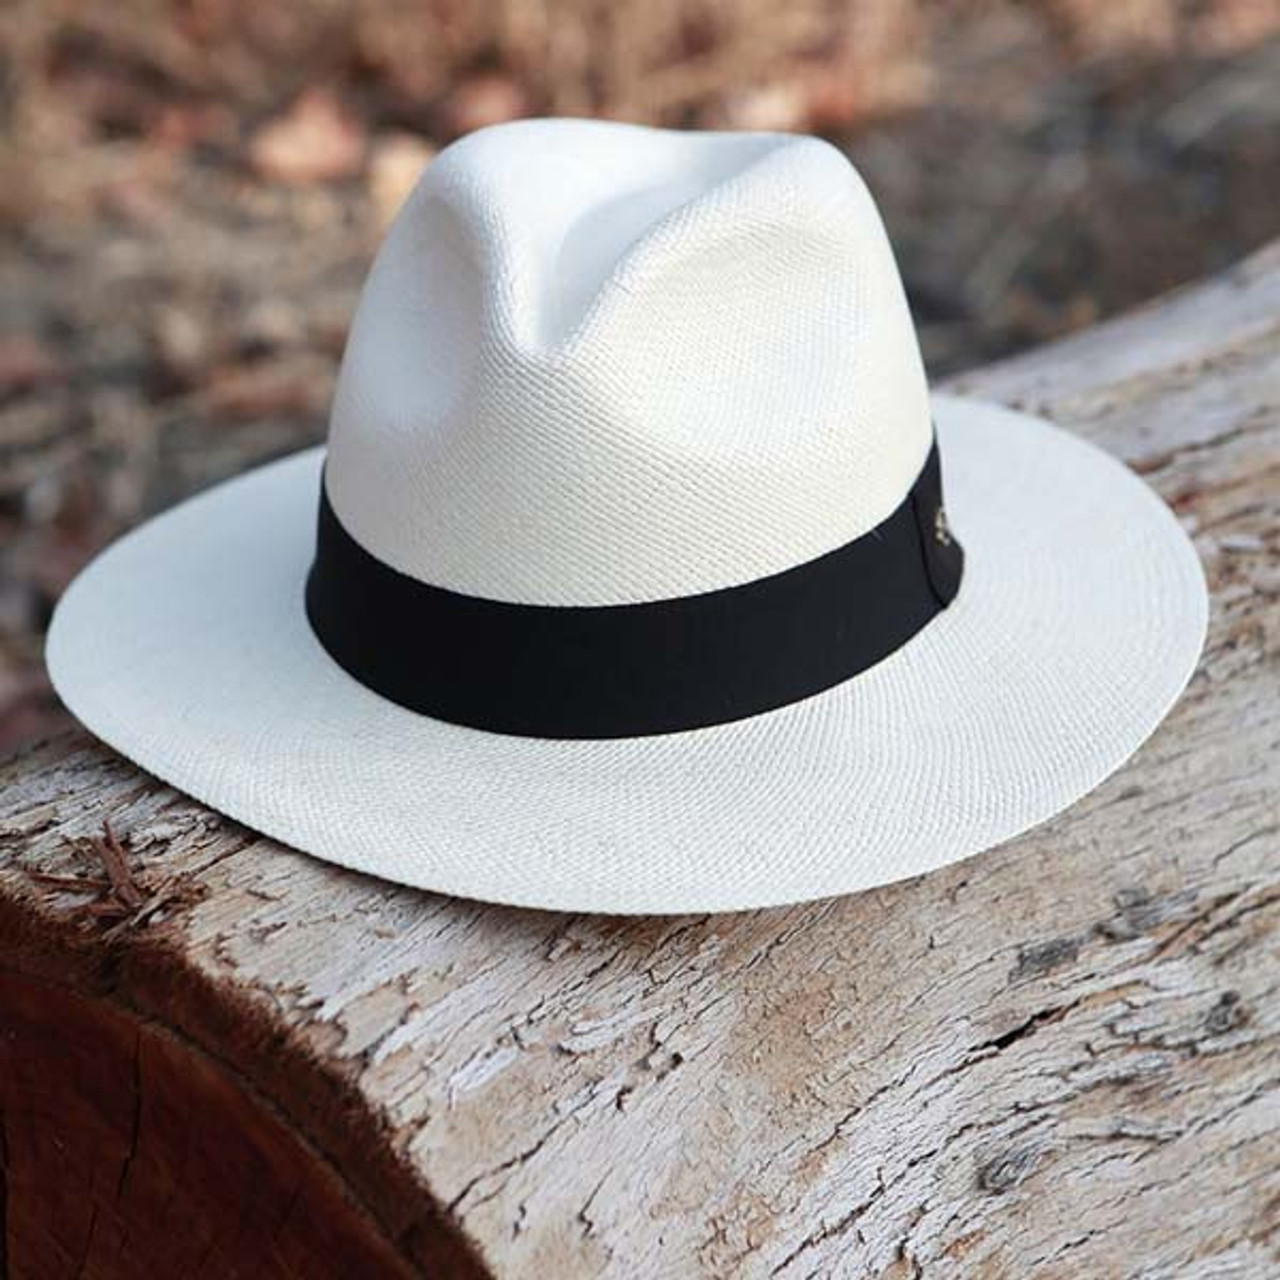 56f56f99 Austral Hats - White Panama Hat with Black Band